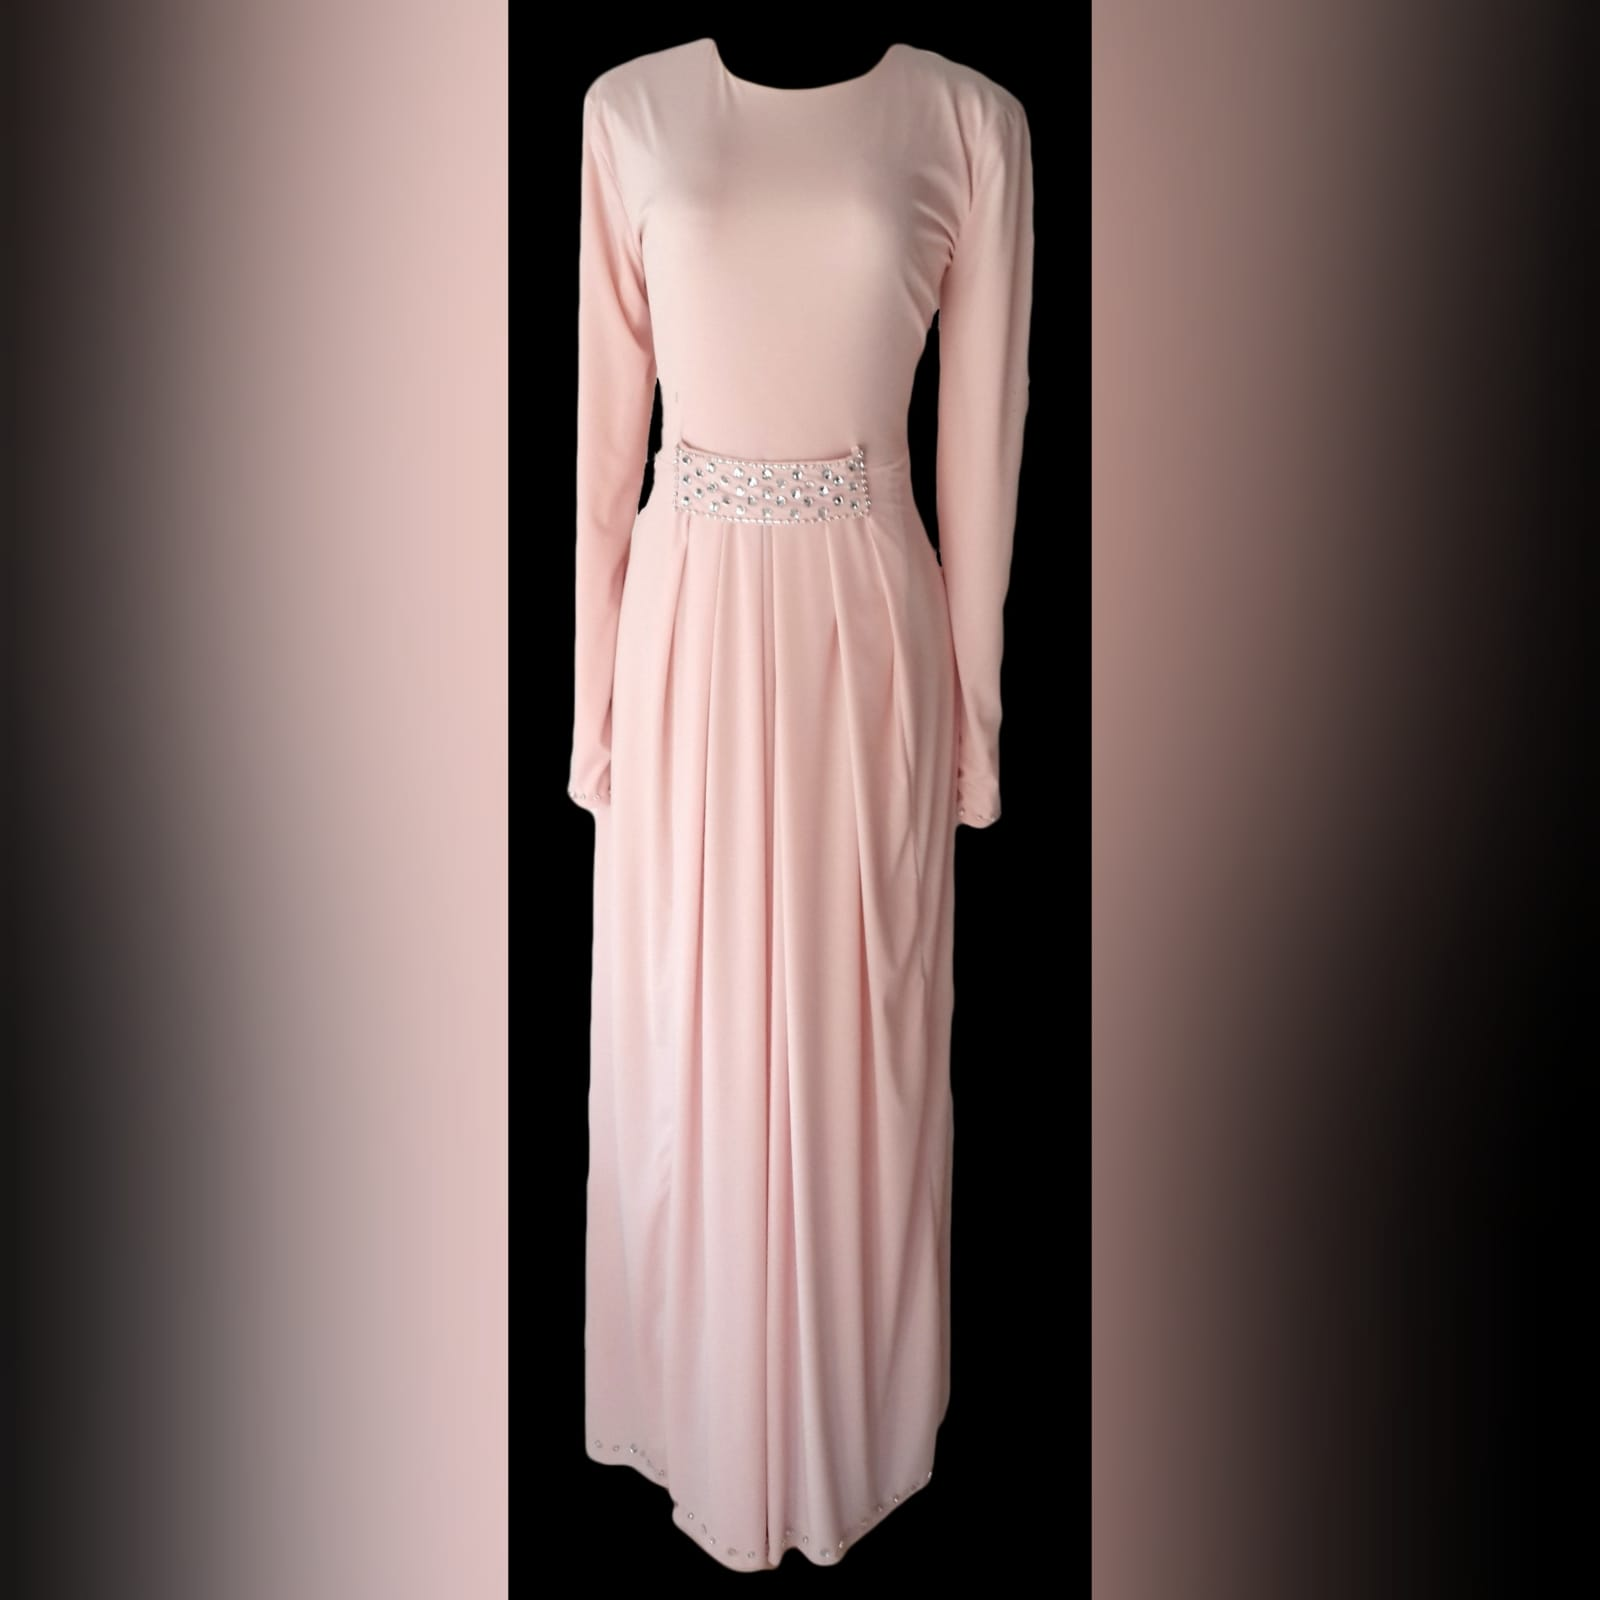 Pale pink long pleated islamic engagement evening dress 4 pale pink long pleated islamic engagement evening dress, with a front beaded belt and long sleeves